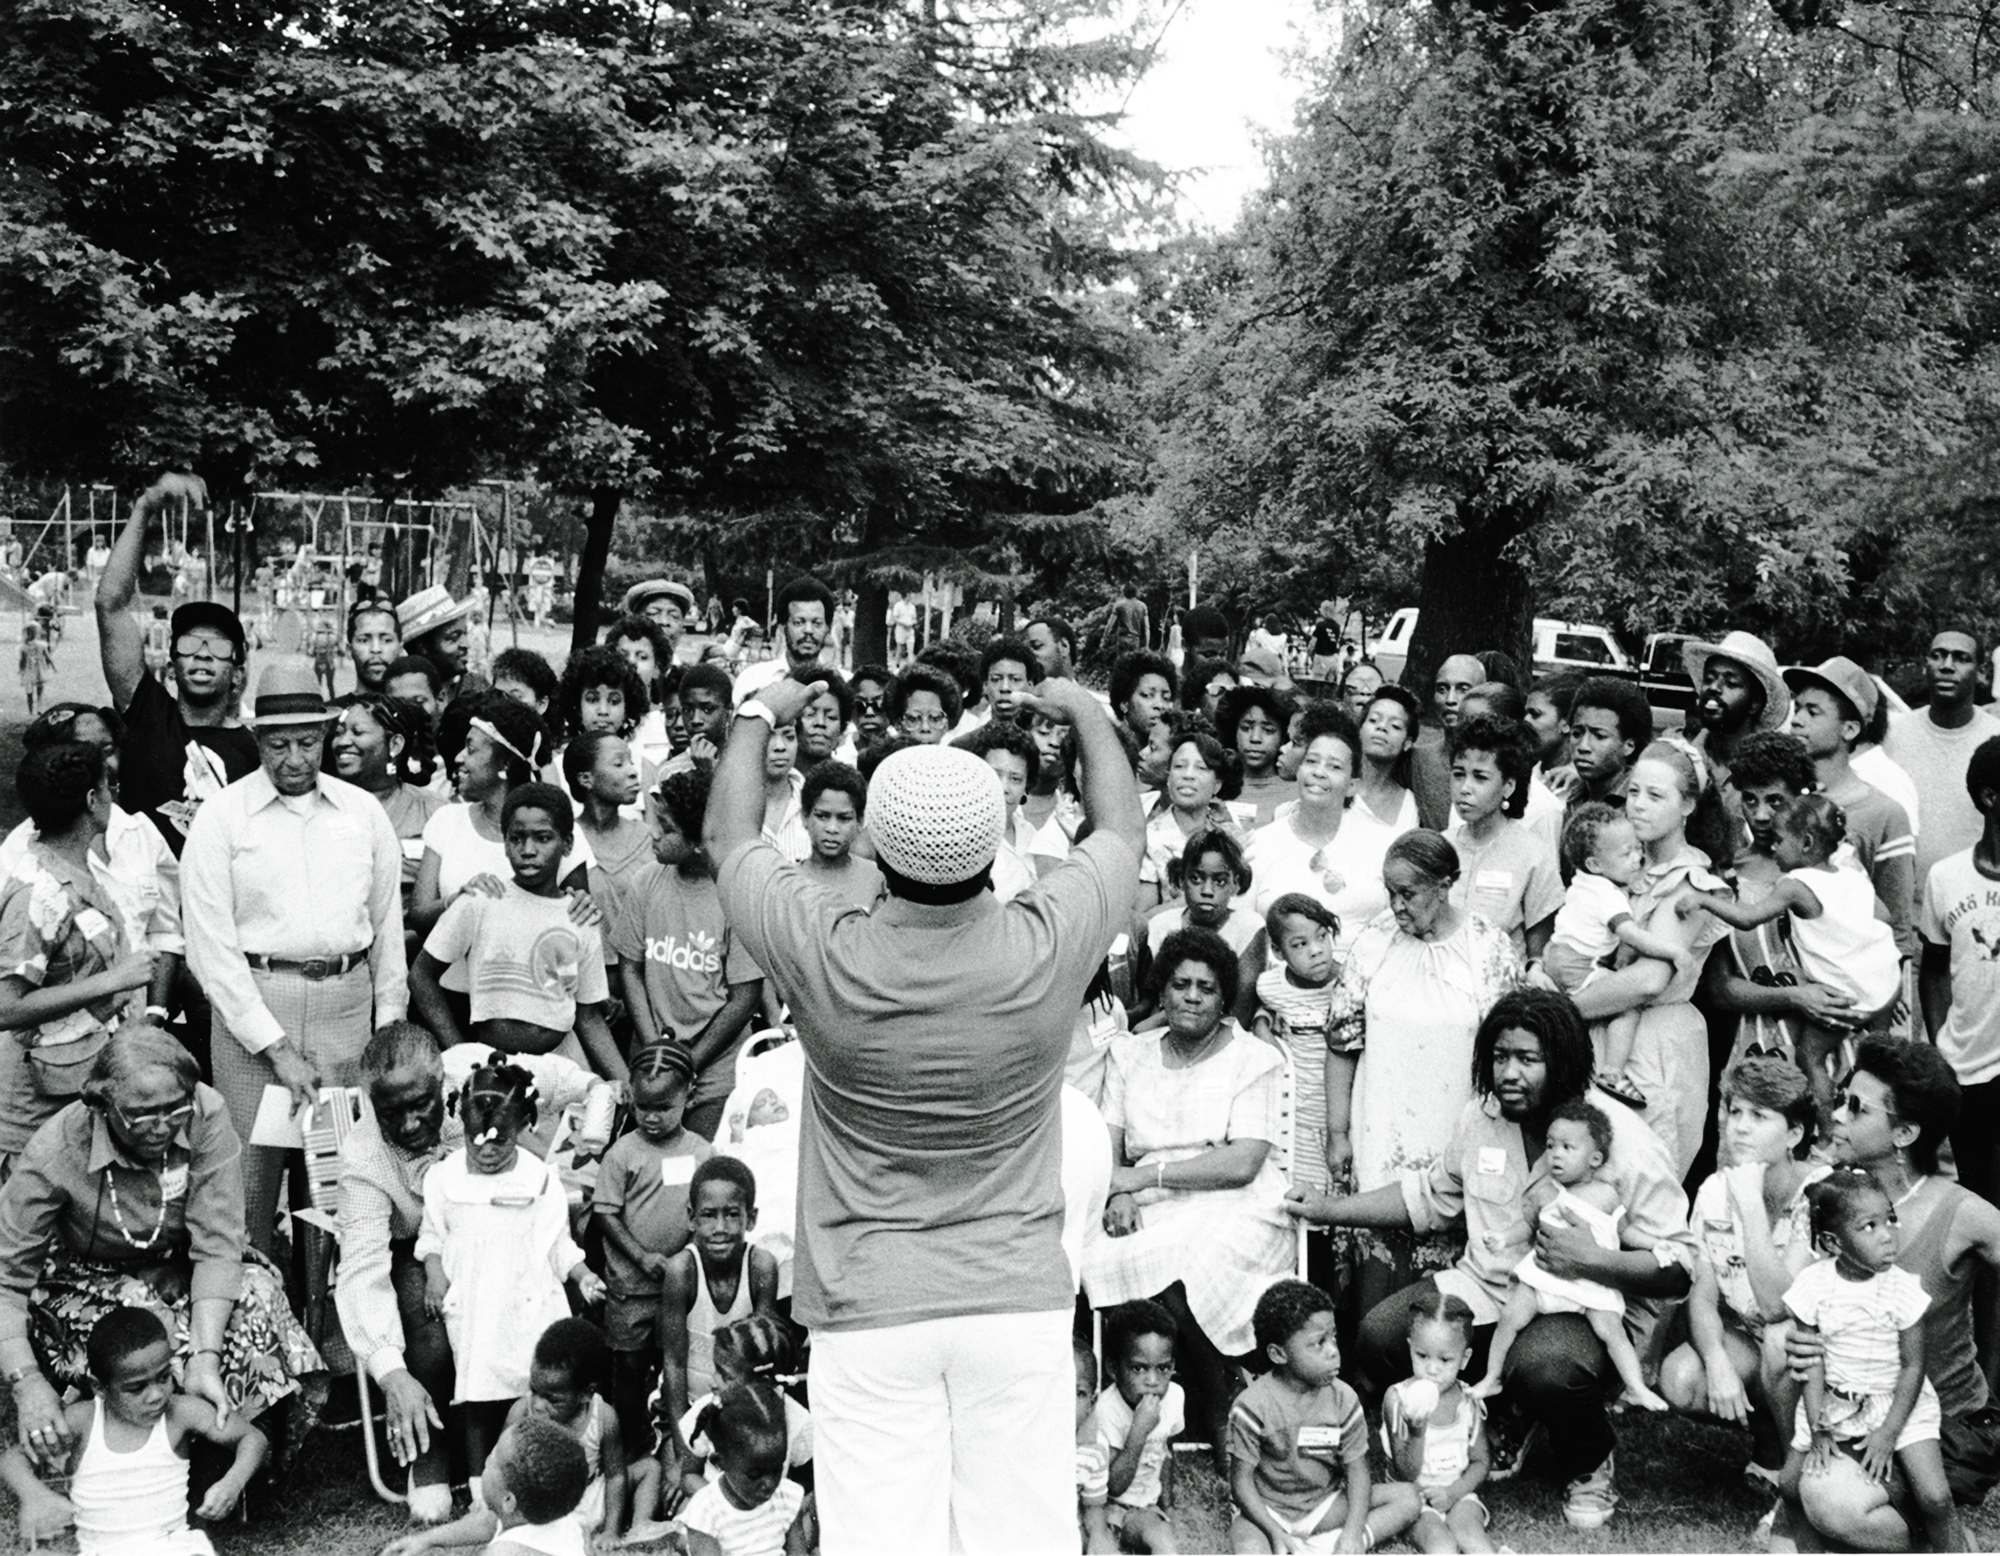 Carrie Mae Weems, Family Reunion, 1978-84.